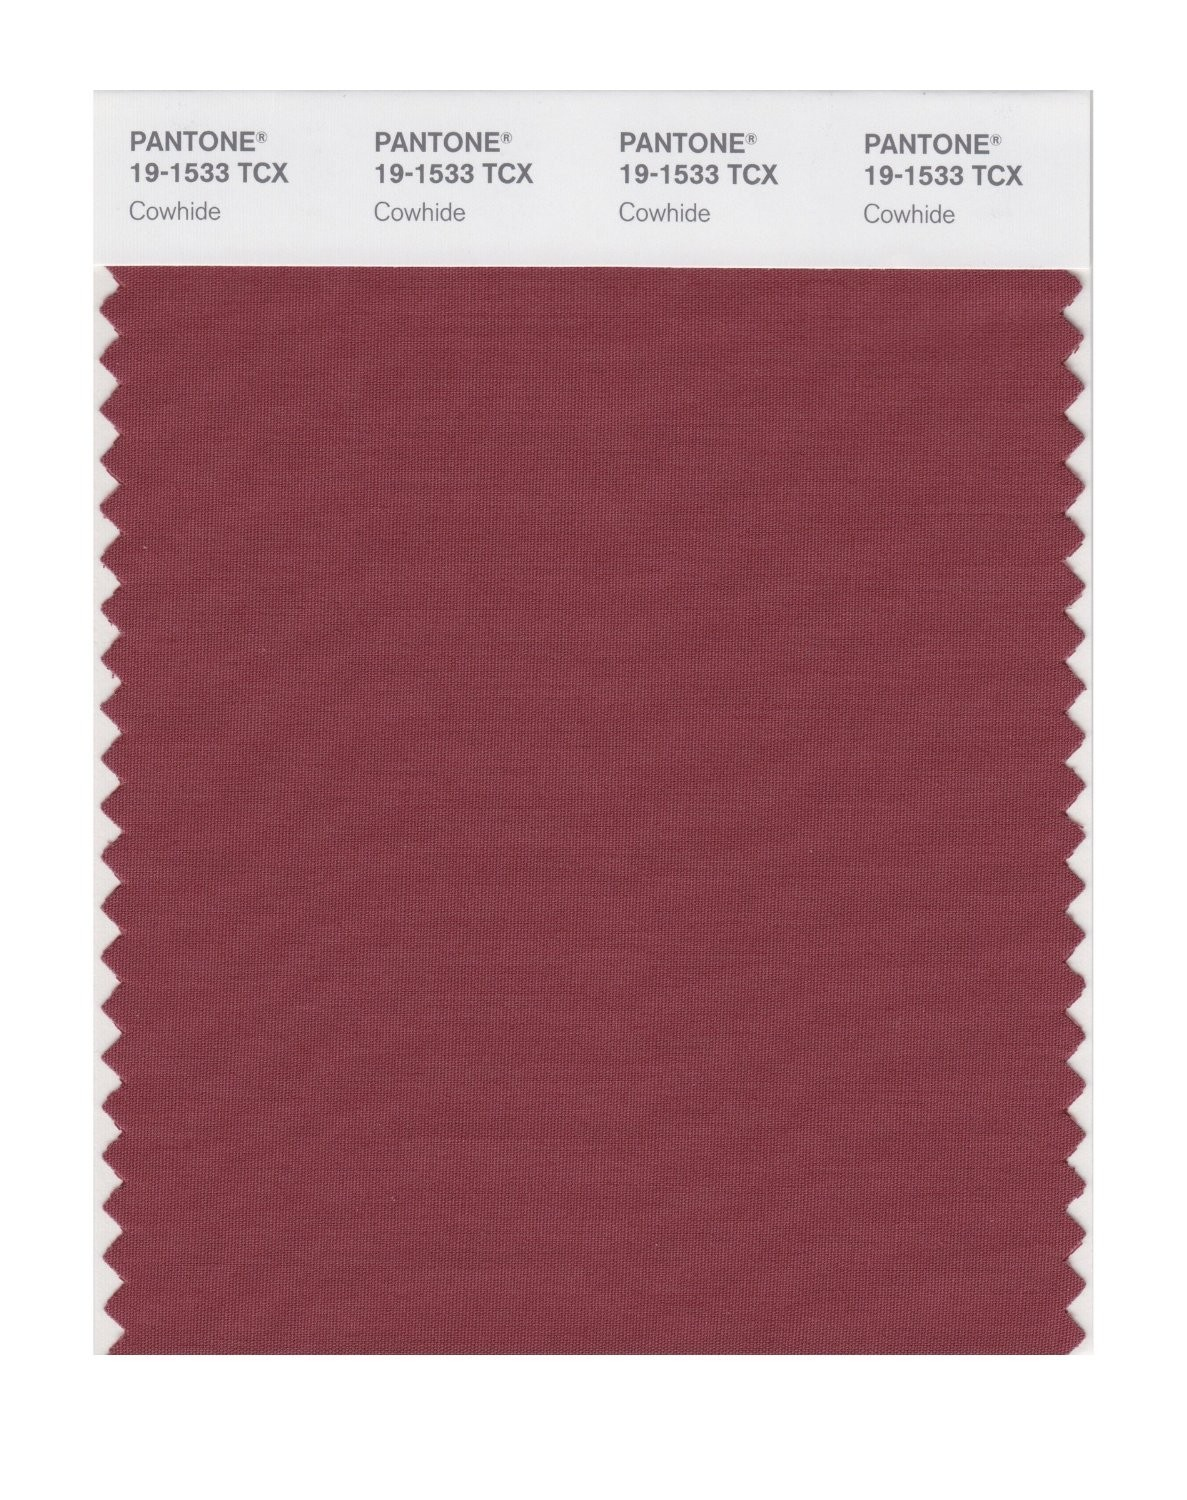 Pantone 19-1533 TCX Swatch Card Cowhide